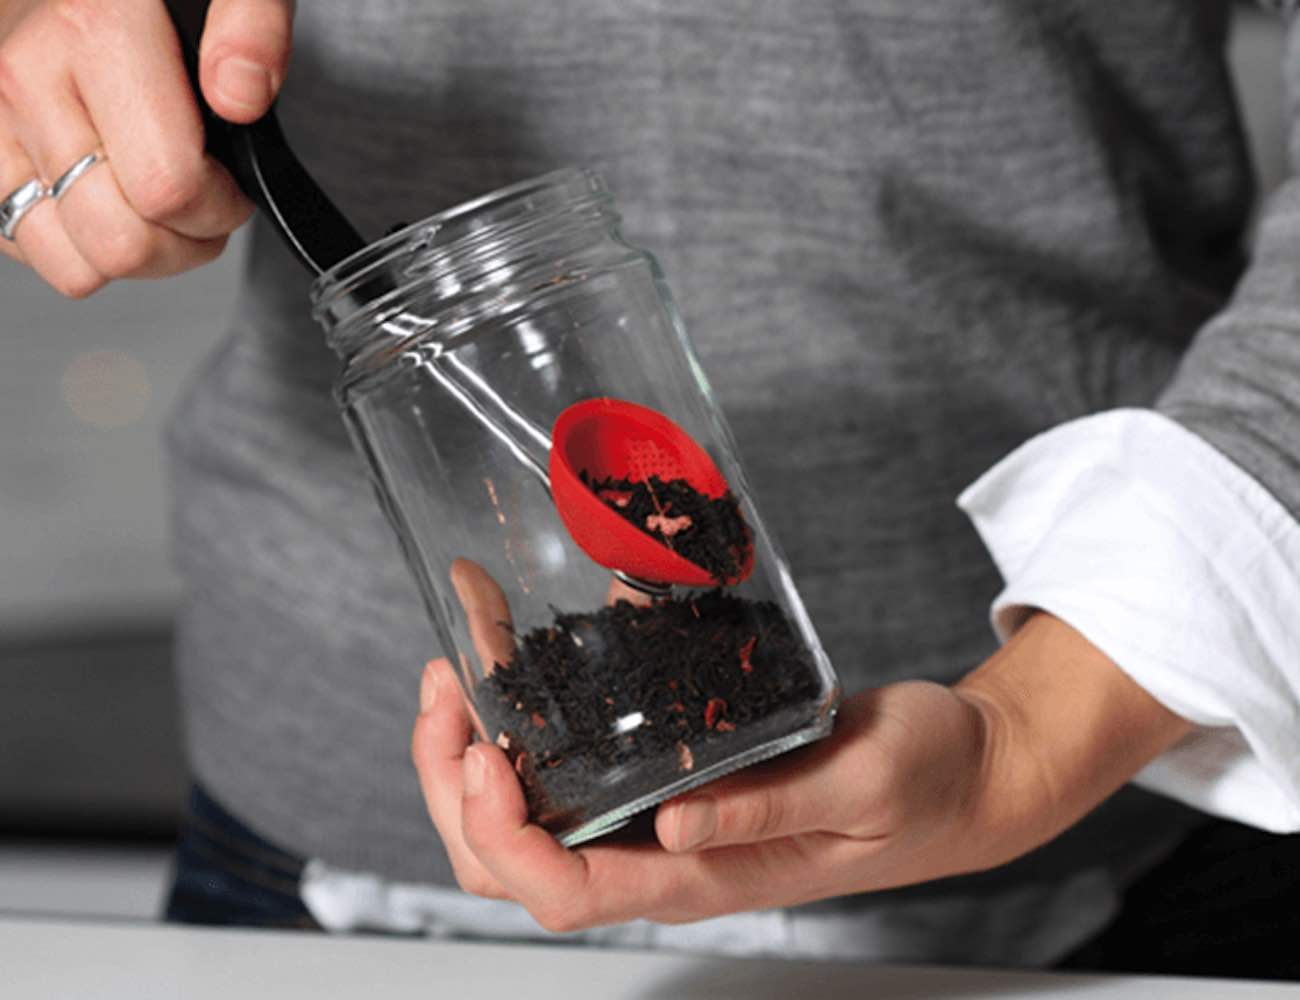 Teafu Squeezable Silicone Tea Infuser gets out every last drop of water